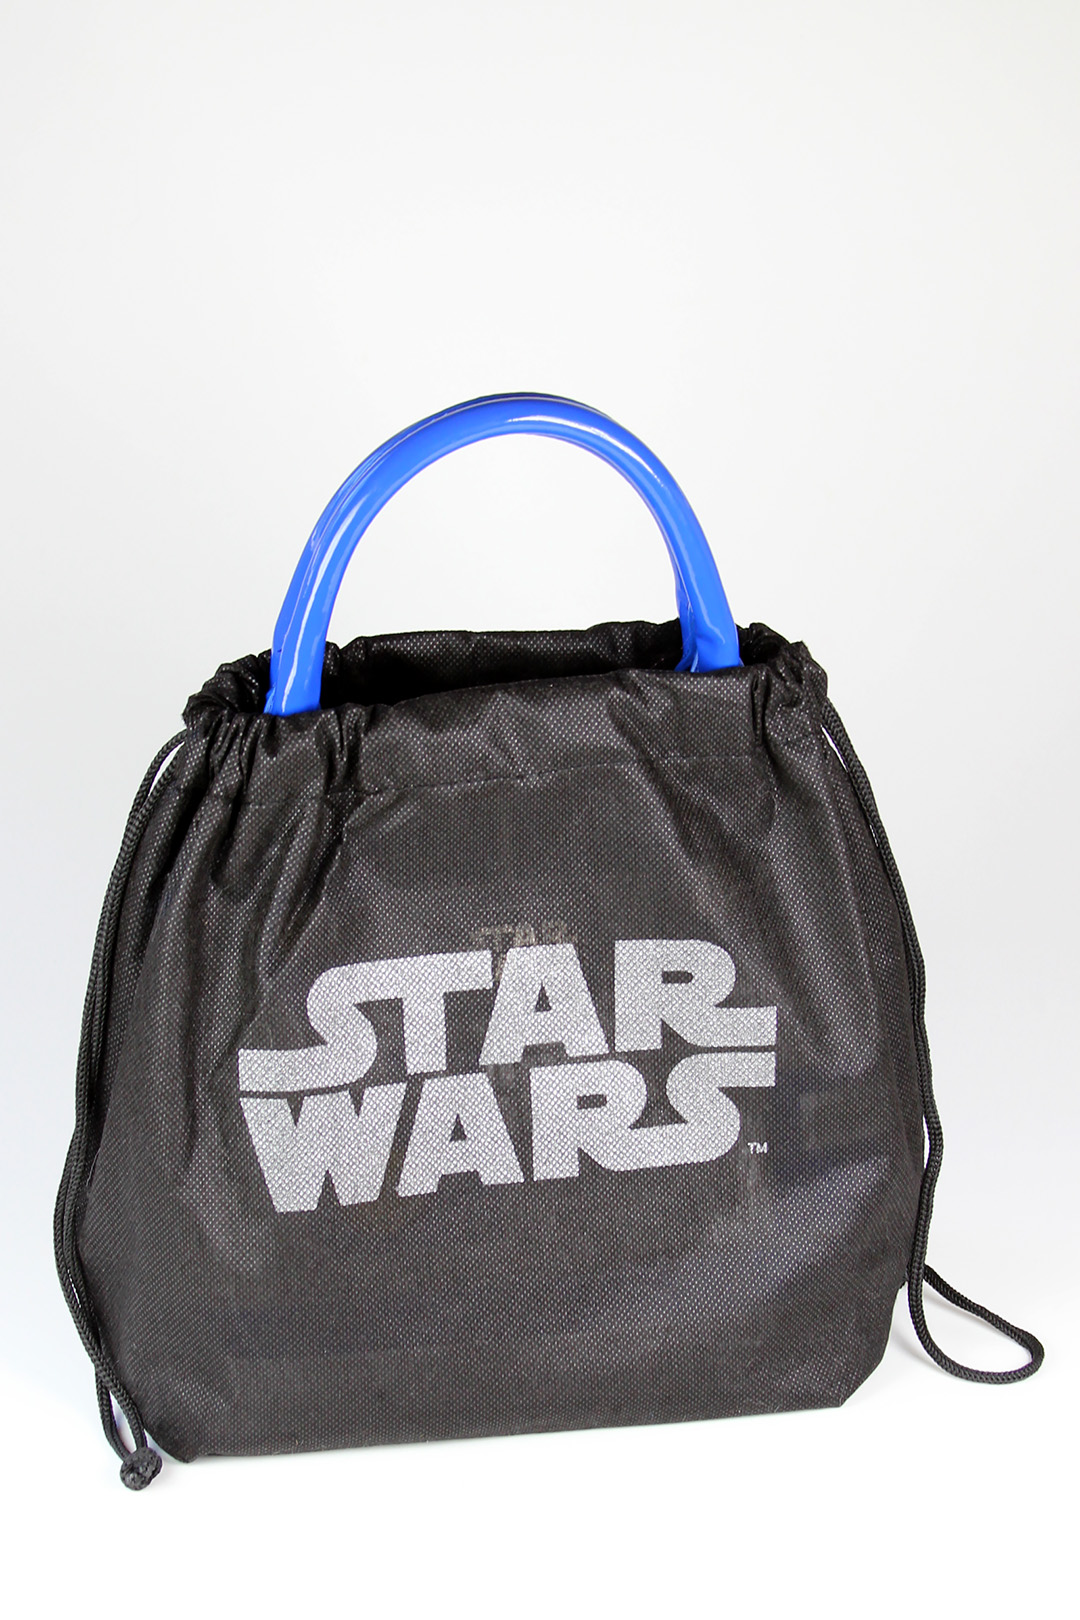 Review – Loungefly R2-D2 handbag